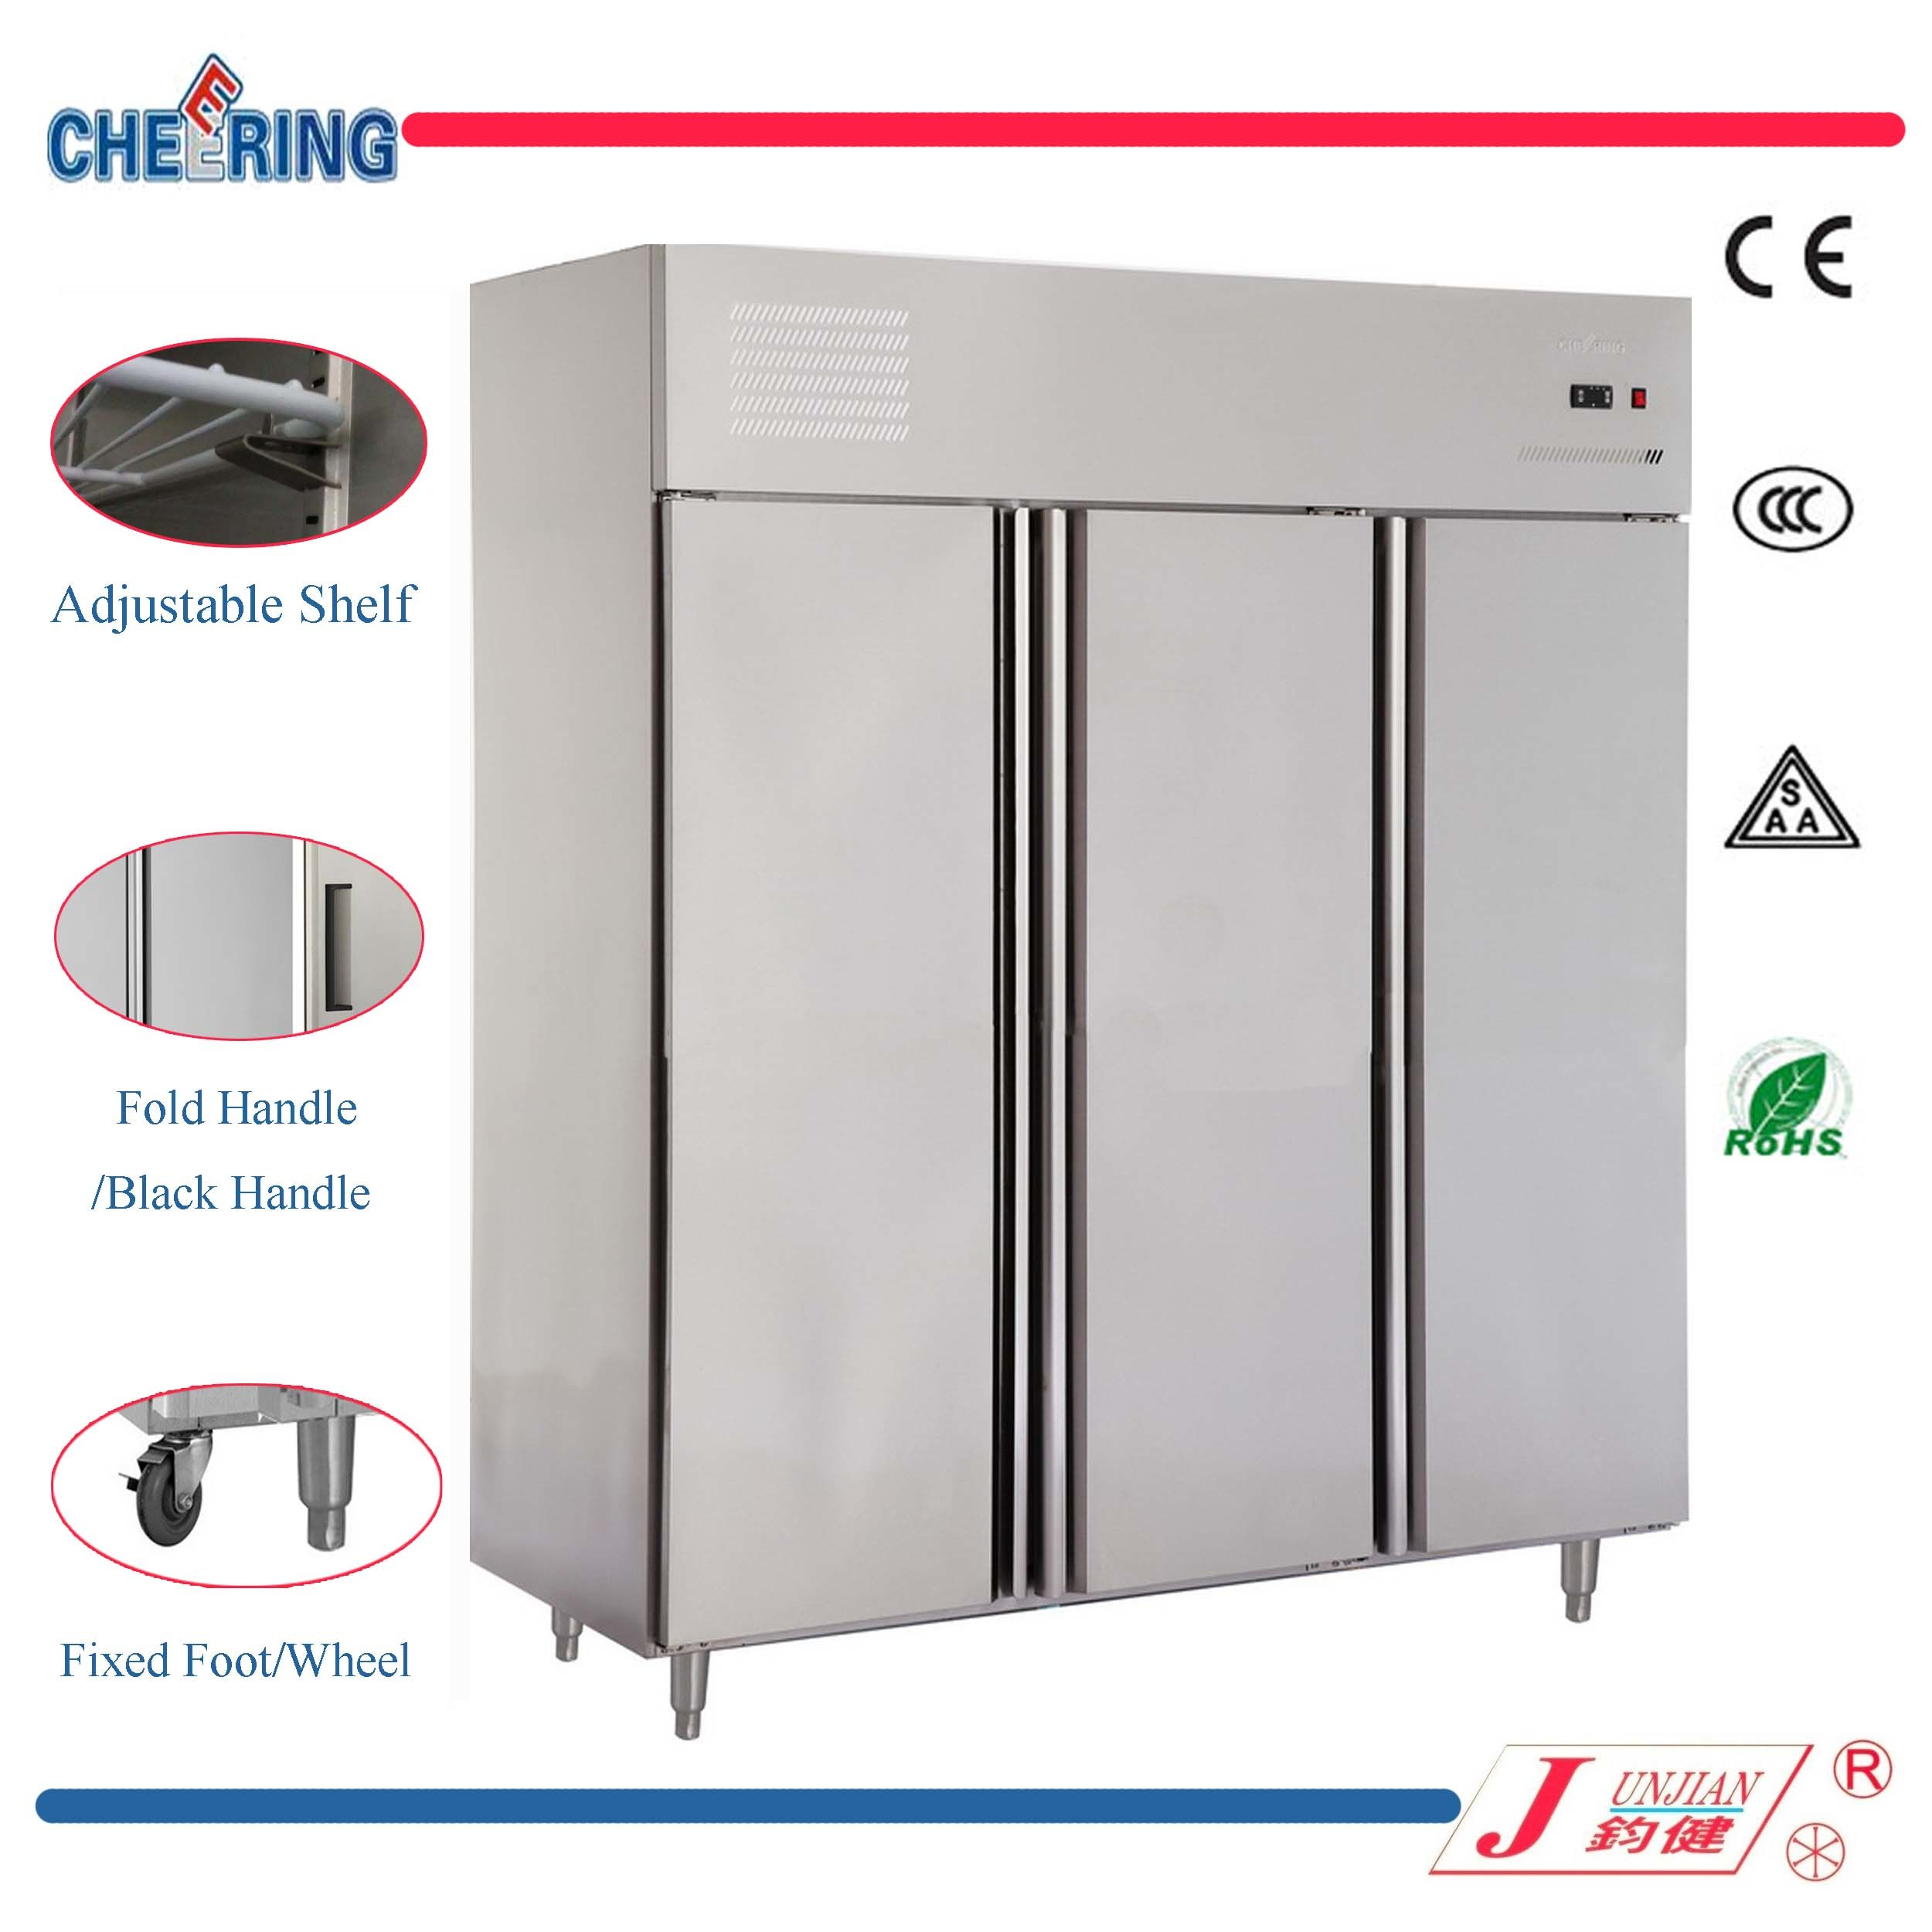 Commercial Stainless Steel Upright Refrigerator Freezer